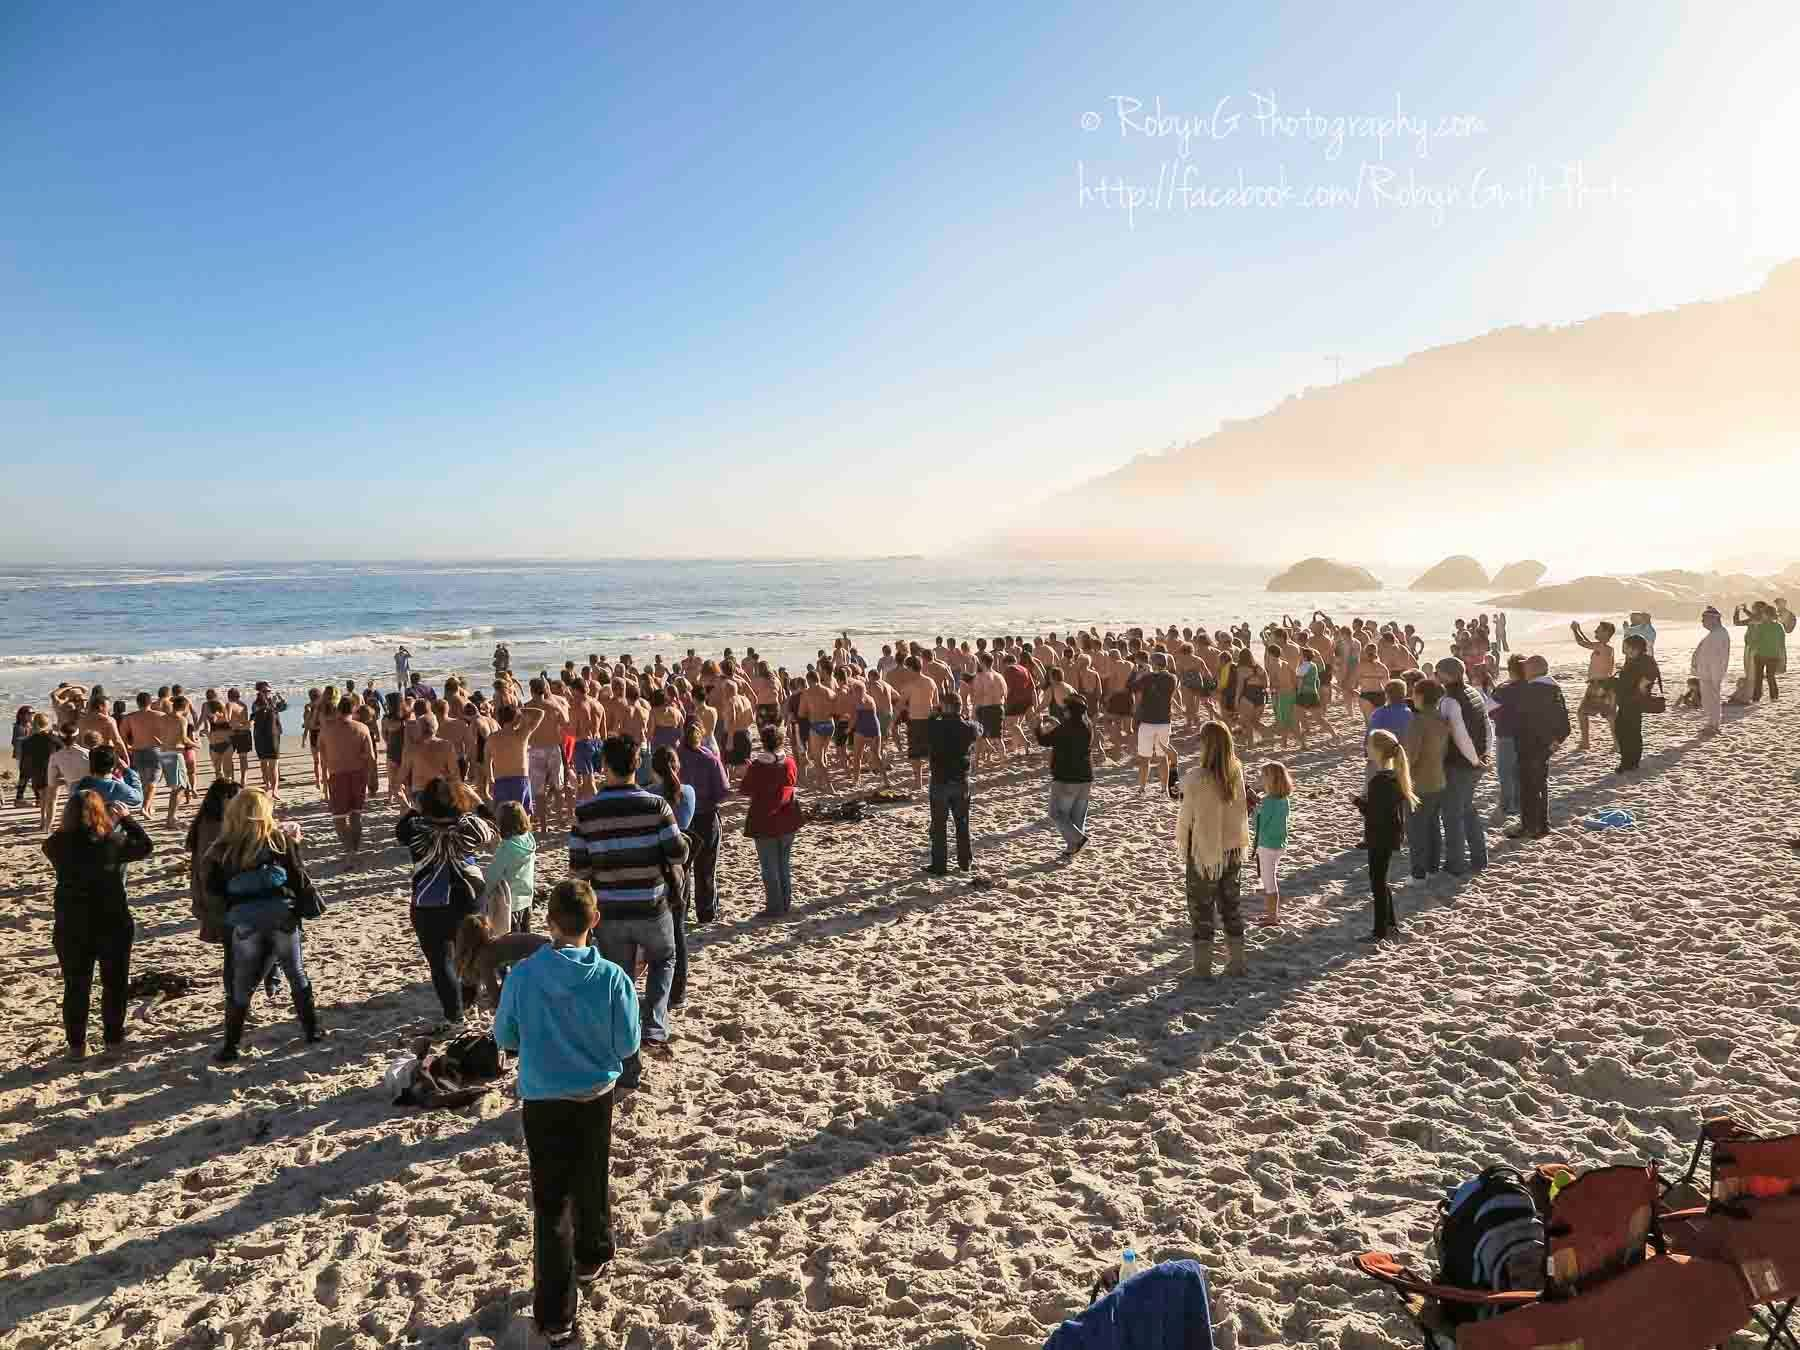 Polar Bear Challenge, Clifton Beach, South Africa